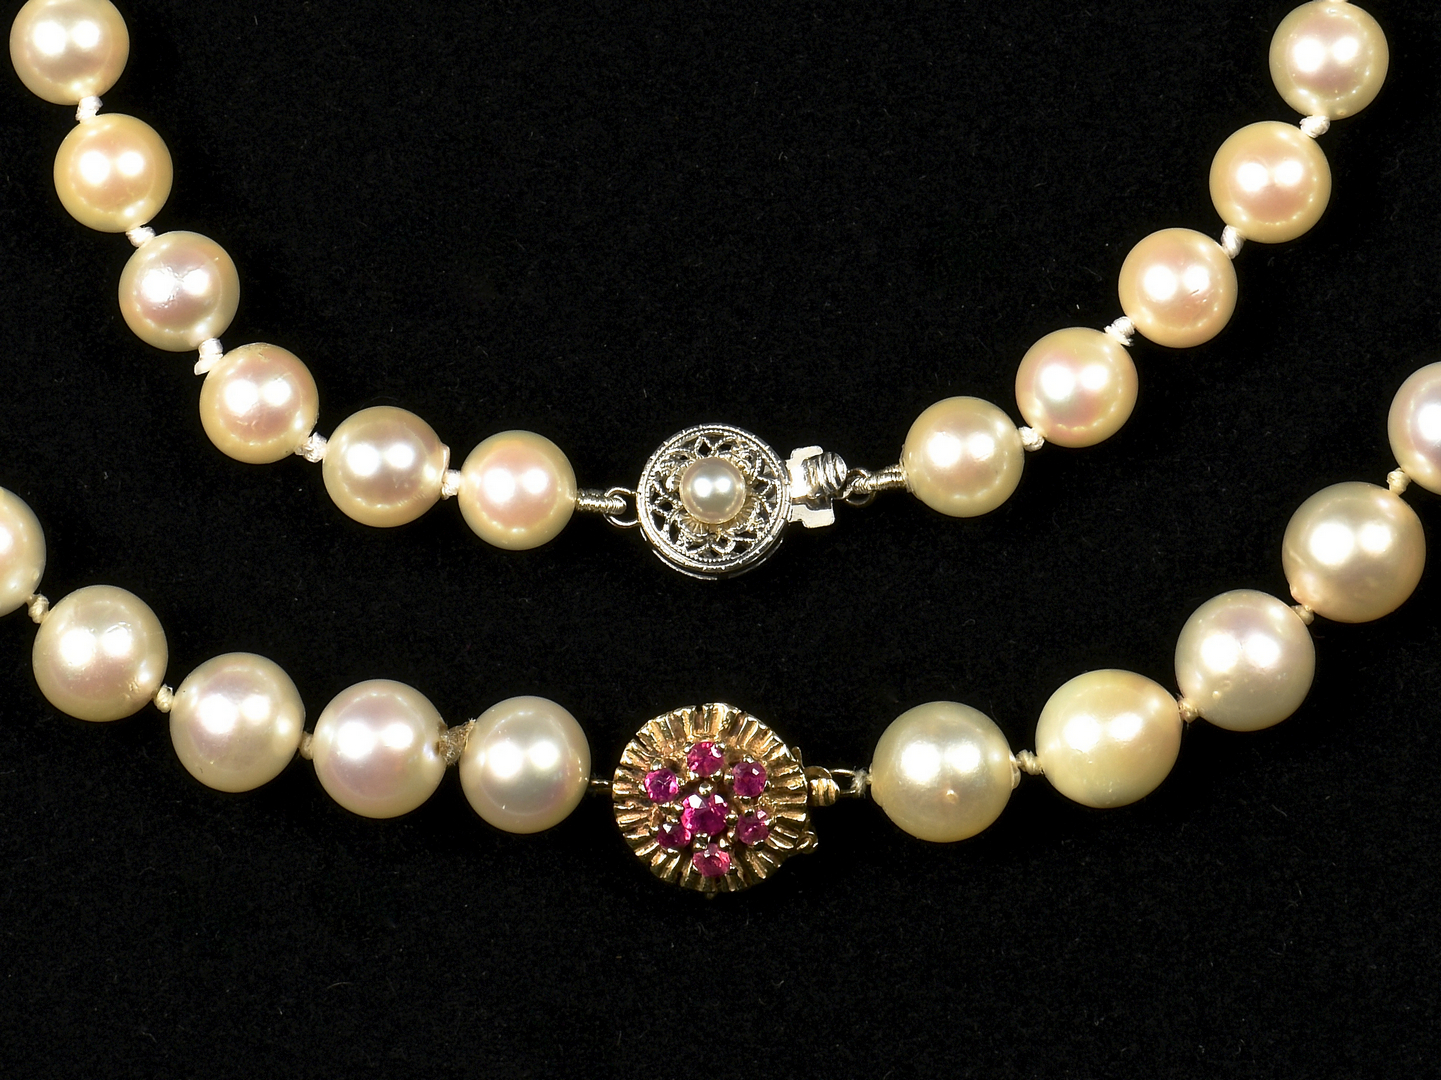 Lot 952 2 Pearl Necklaces W 14k Gold Clasps